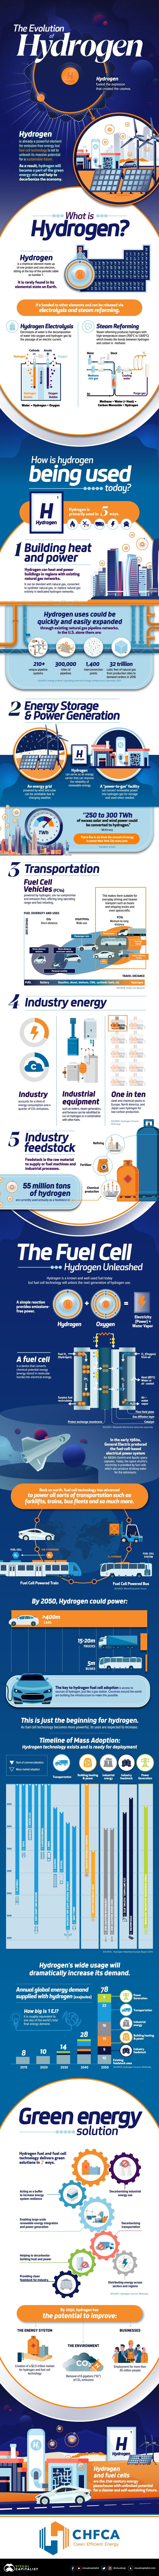 The Evolution of Hydrogen #infographic